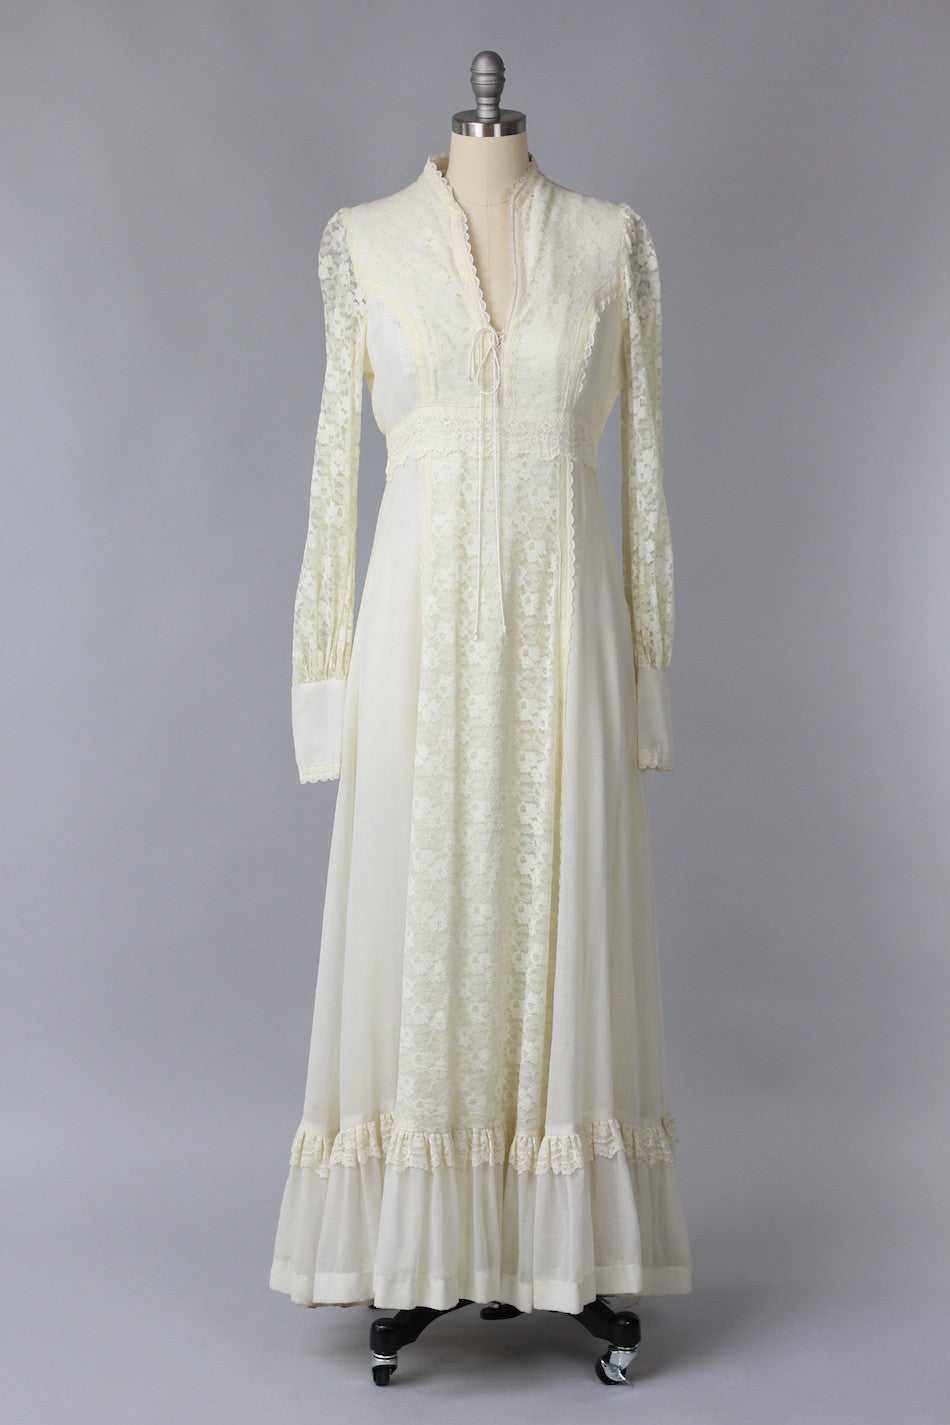 1970s gunne sax wedding dress the vintage net for 1970s wedding dresses for sale